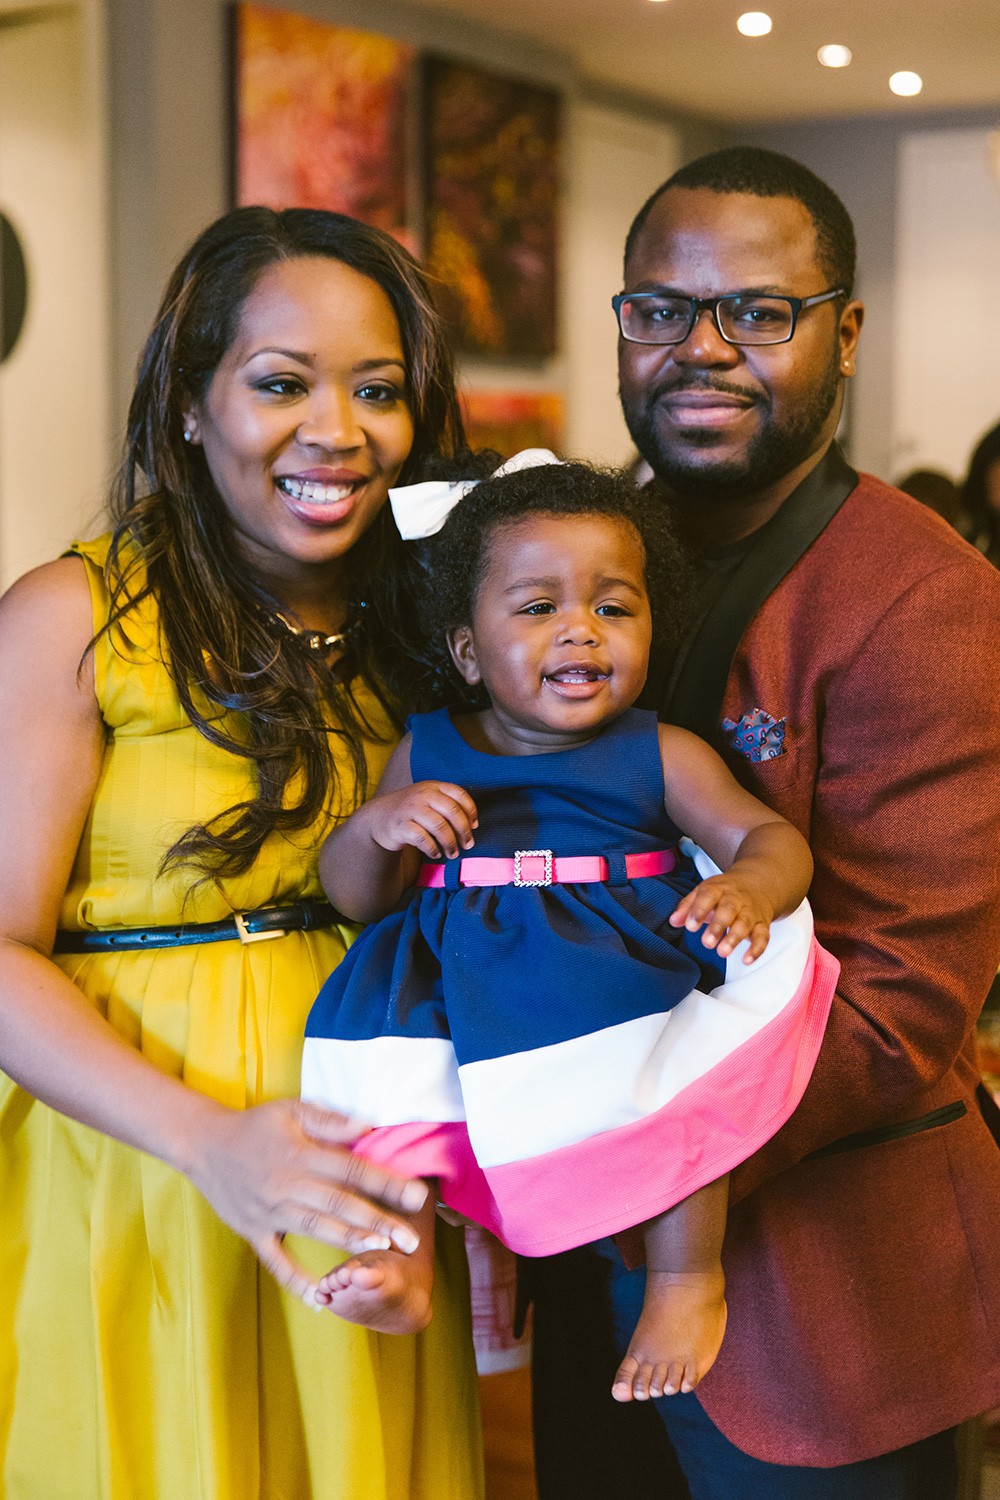 WEB_2015_April_BabyShower_EuniceDockery_0584.jpg